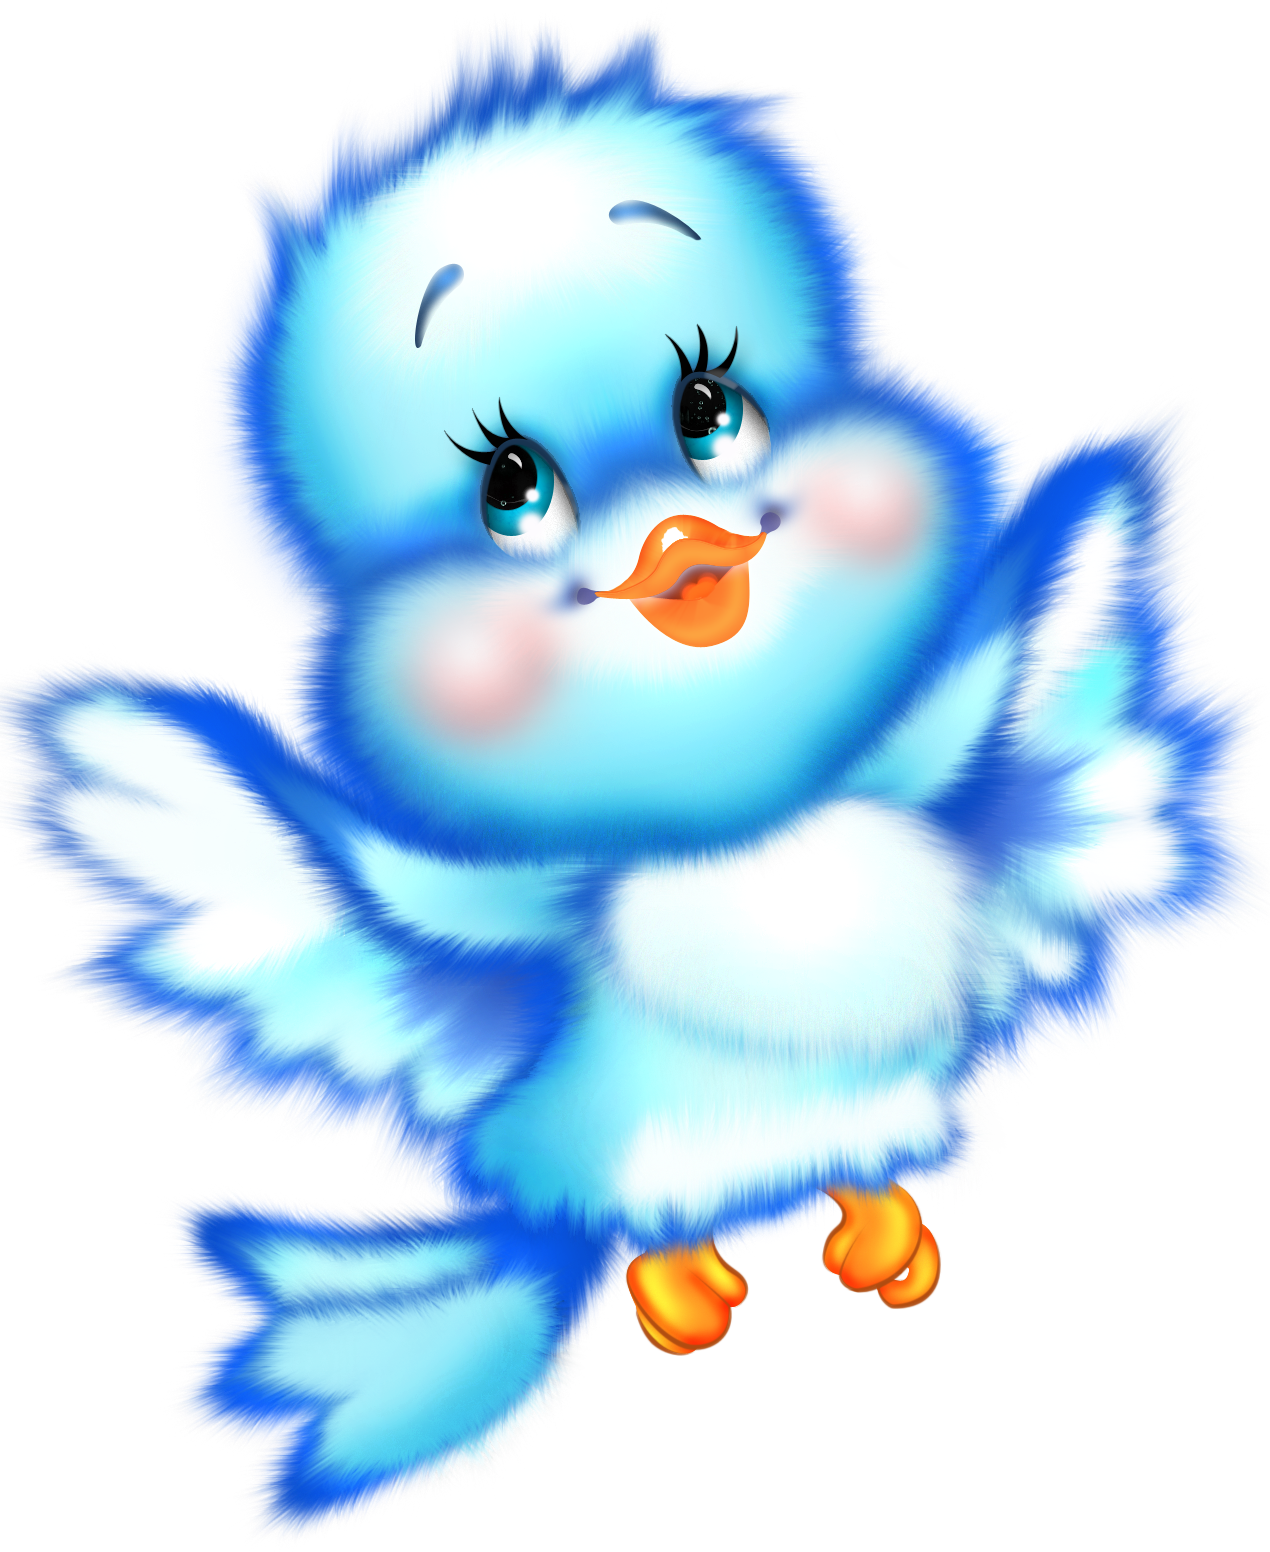 Cute Blue Bird Cartoon Free Clipart | ღ❣Kid's~Stuff❣ღ ...